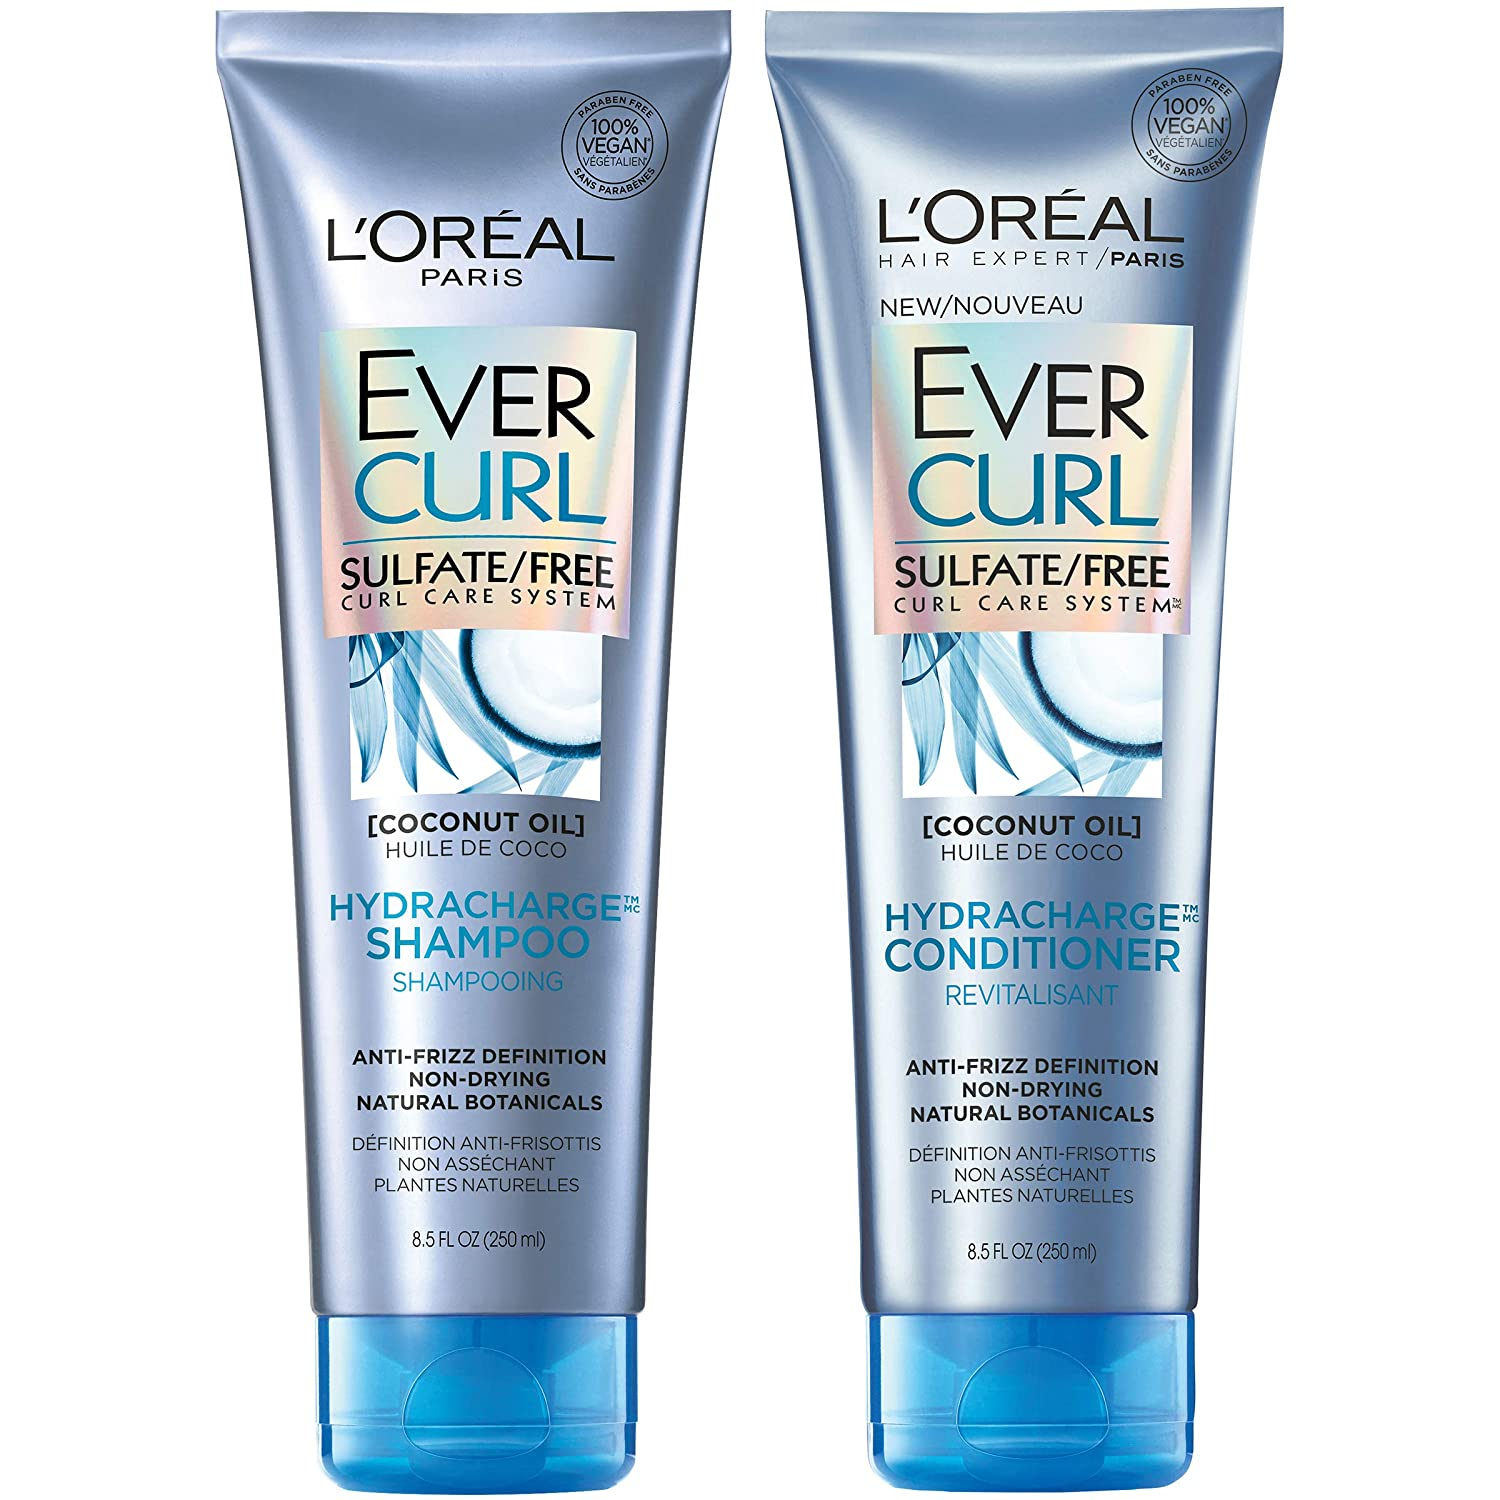 L'Oréal Paris Hair Care EverCurl Sulfate Free Shampoo & Conditioner Kit